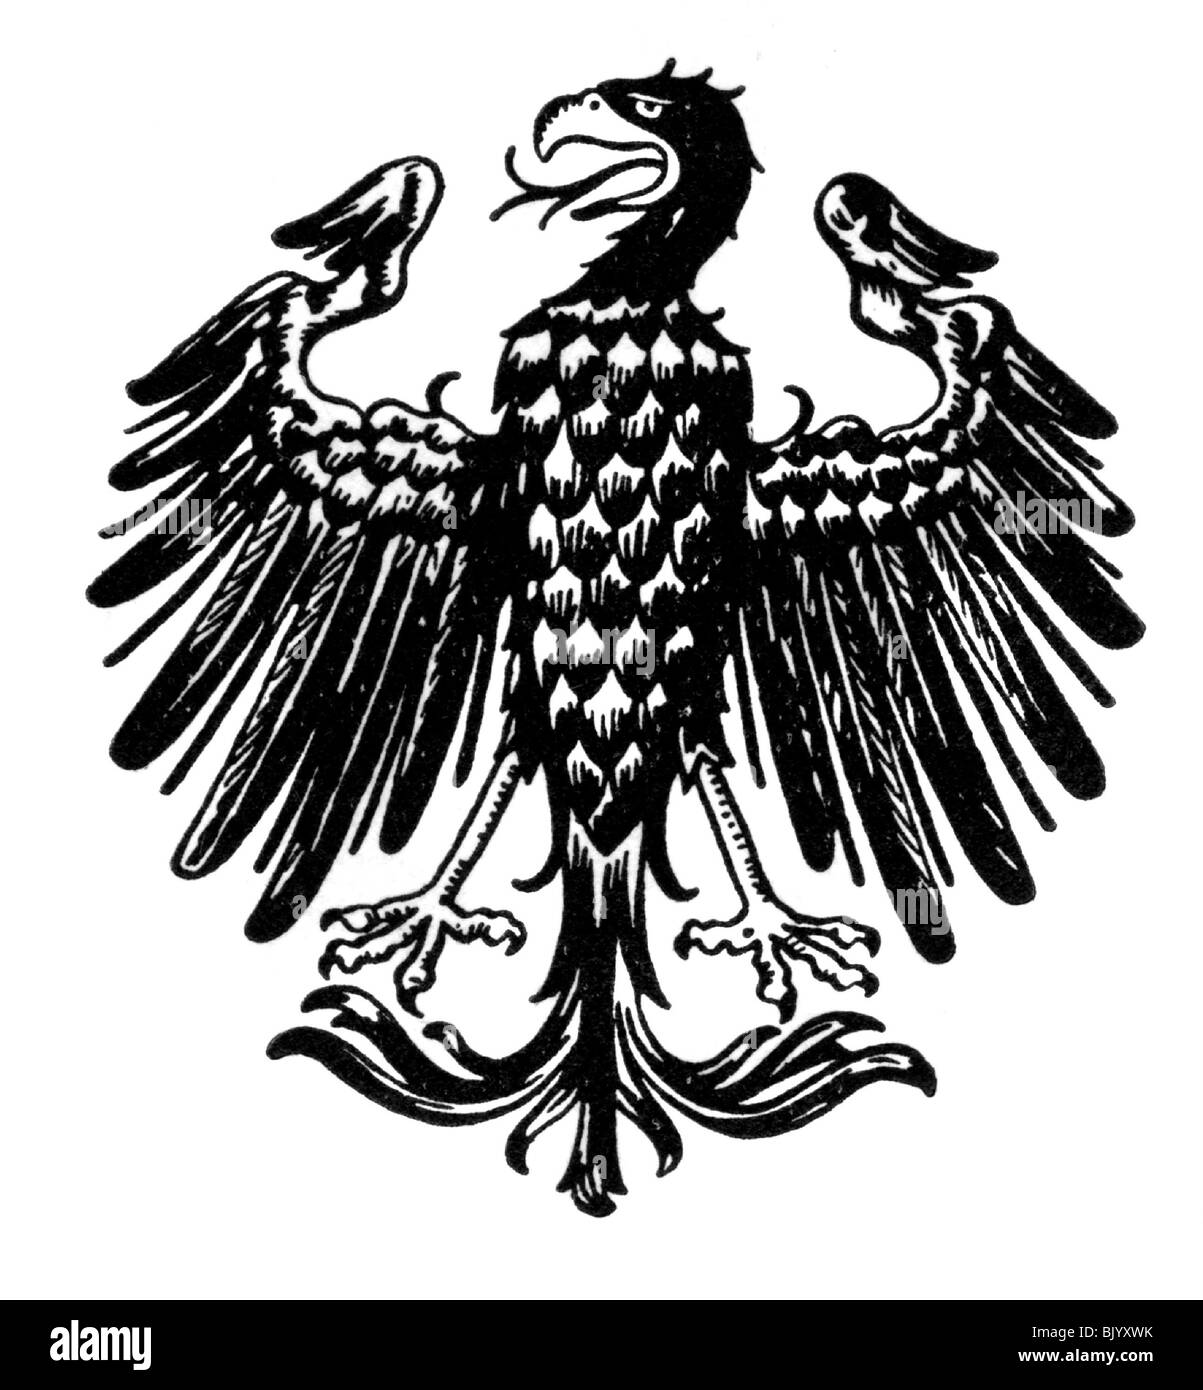 heralrdy, emblems, Holy Roman Empire of the German Empire ...